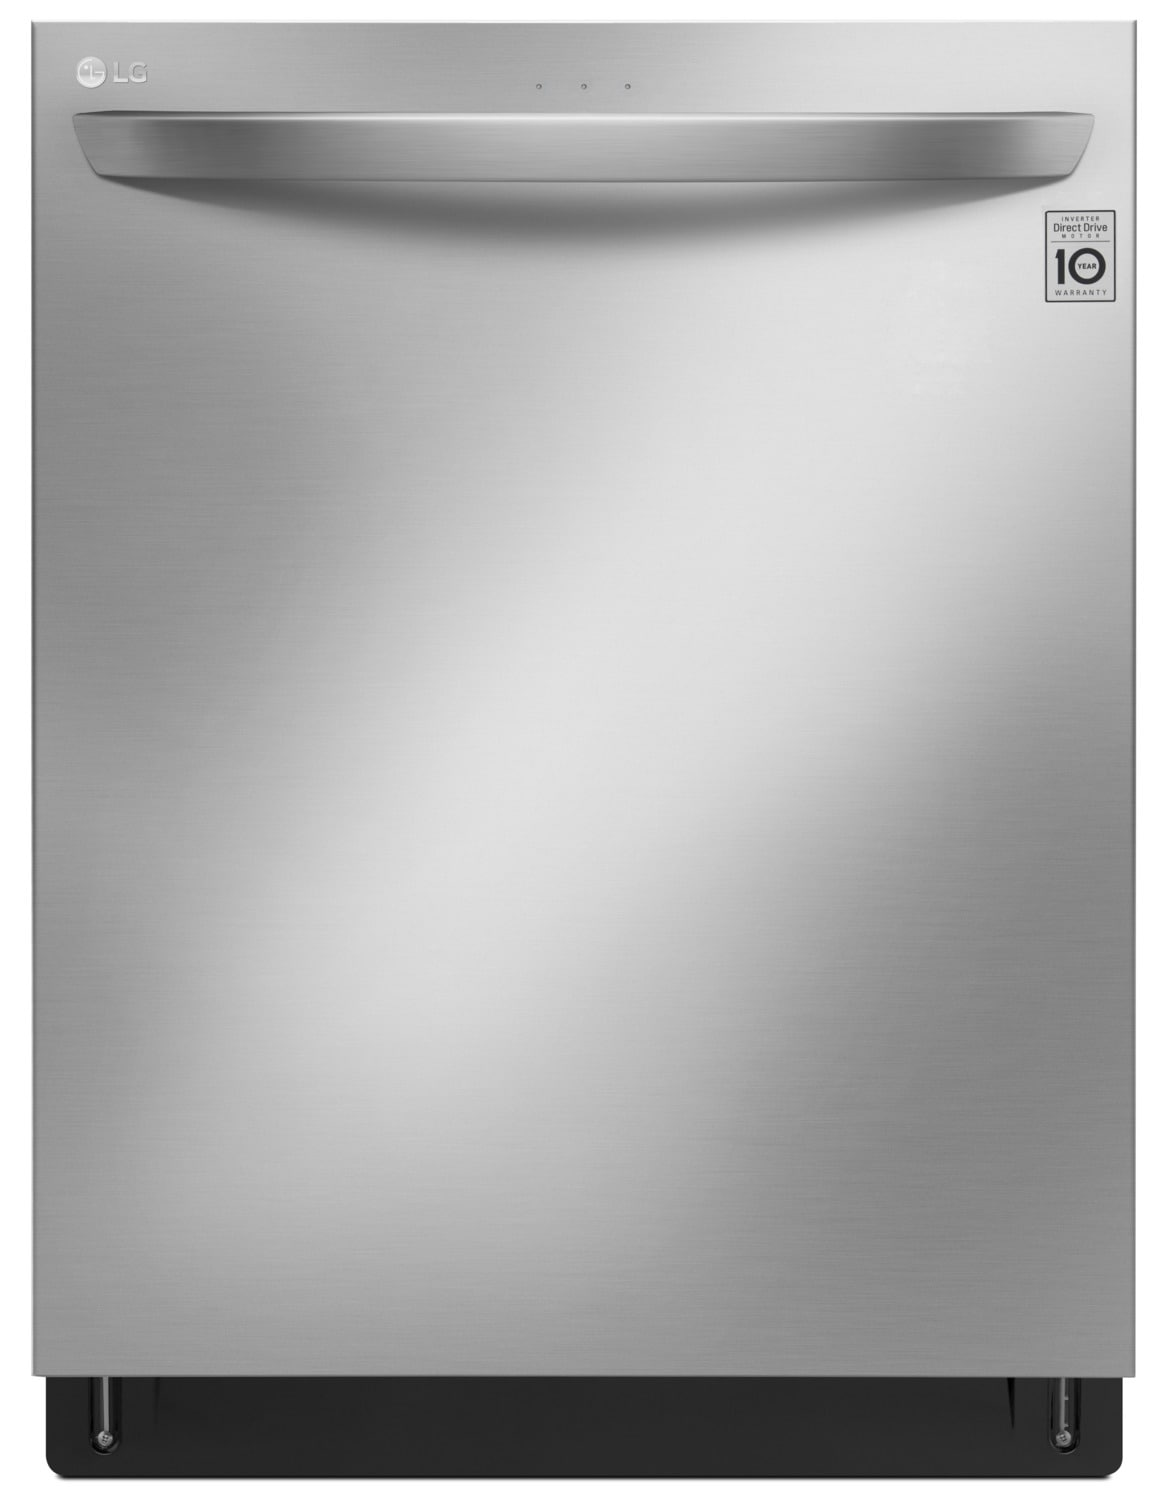 LG Top-Control Dishwasher with QuadWash™ – LDT7797ST